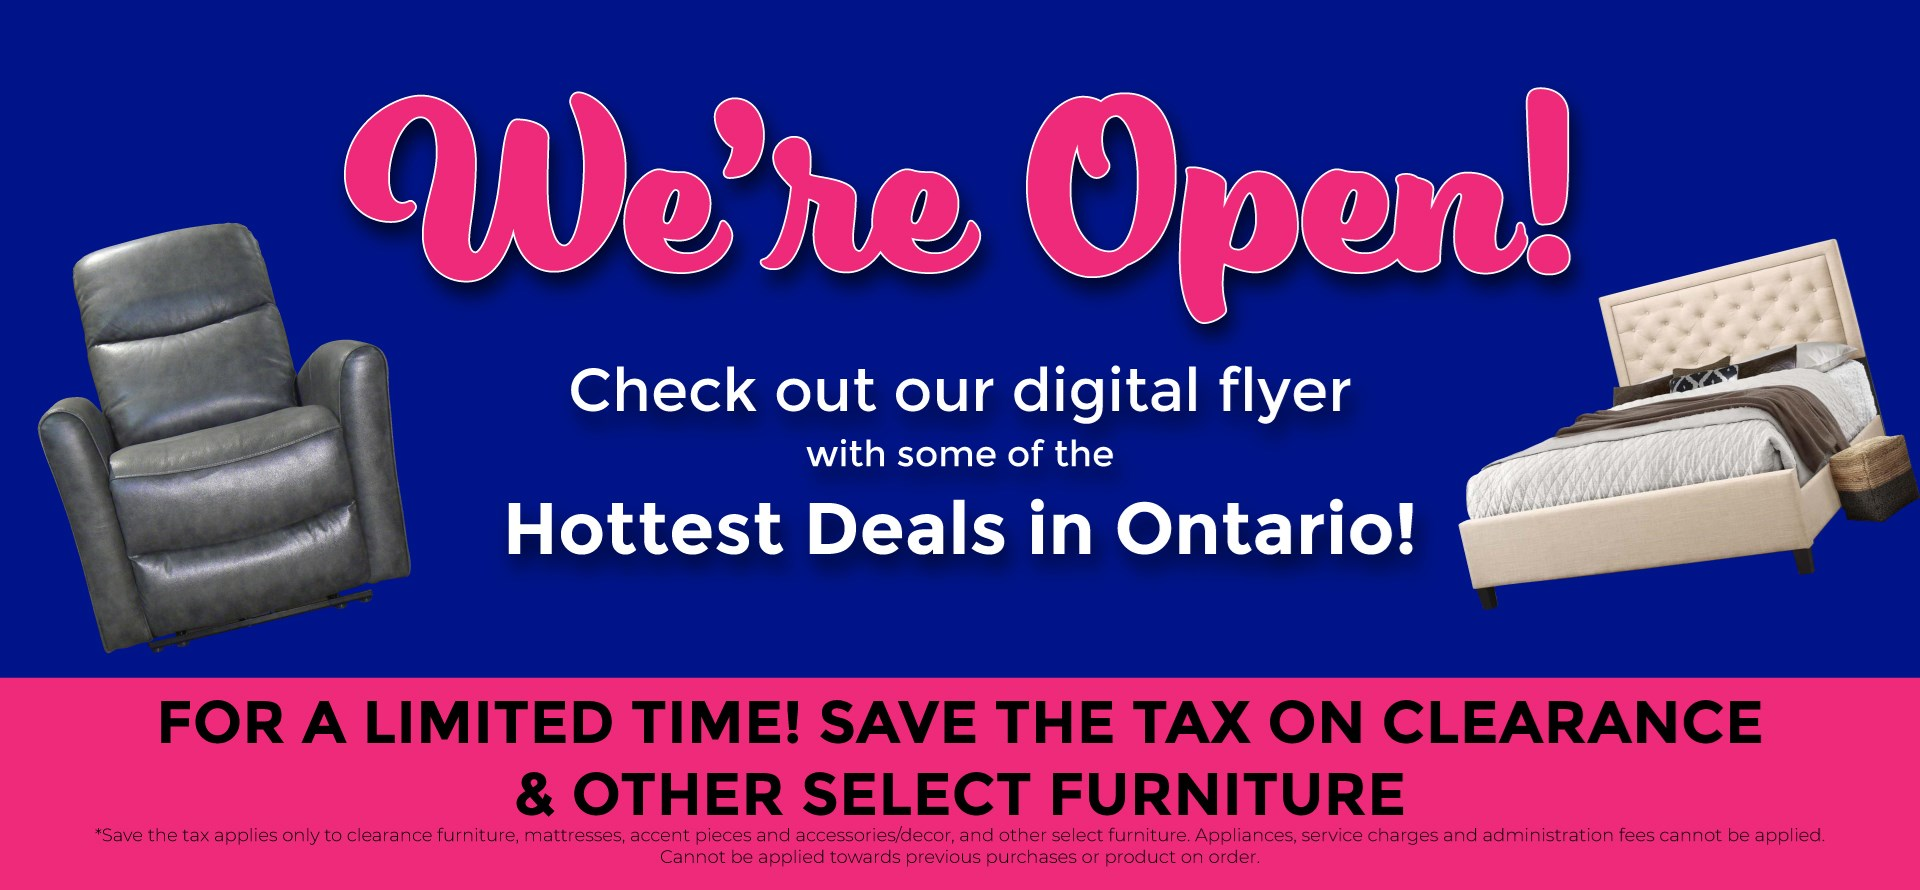 We're Open! Check out our digital flyer with some of the hottest deals in Ontario!